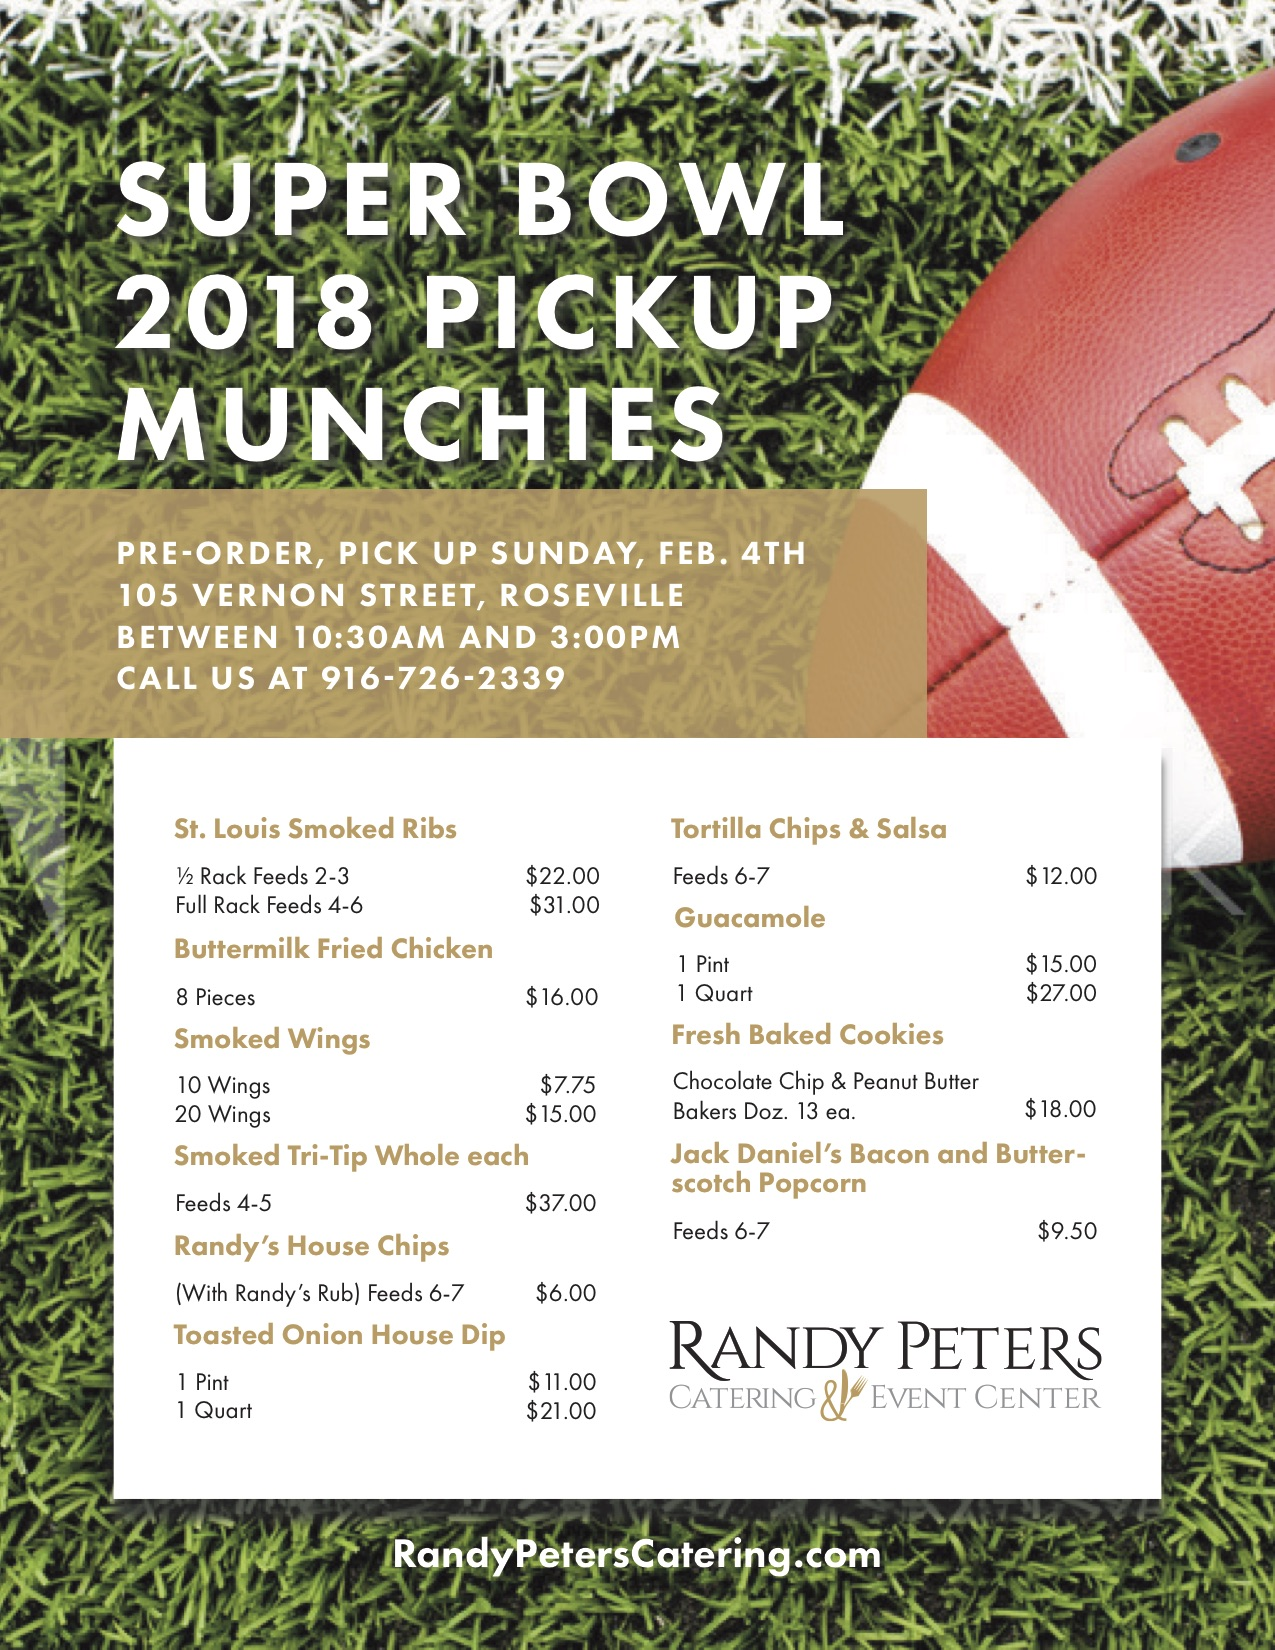 Discover Randy Peters Catering's Super Bowl Catering menu.